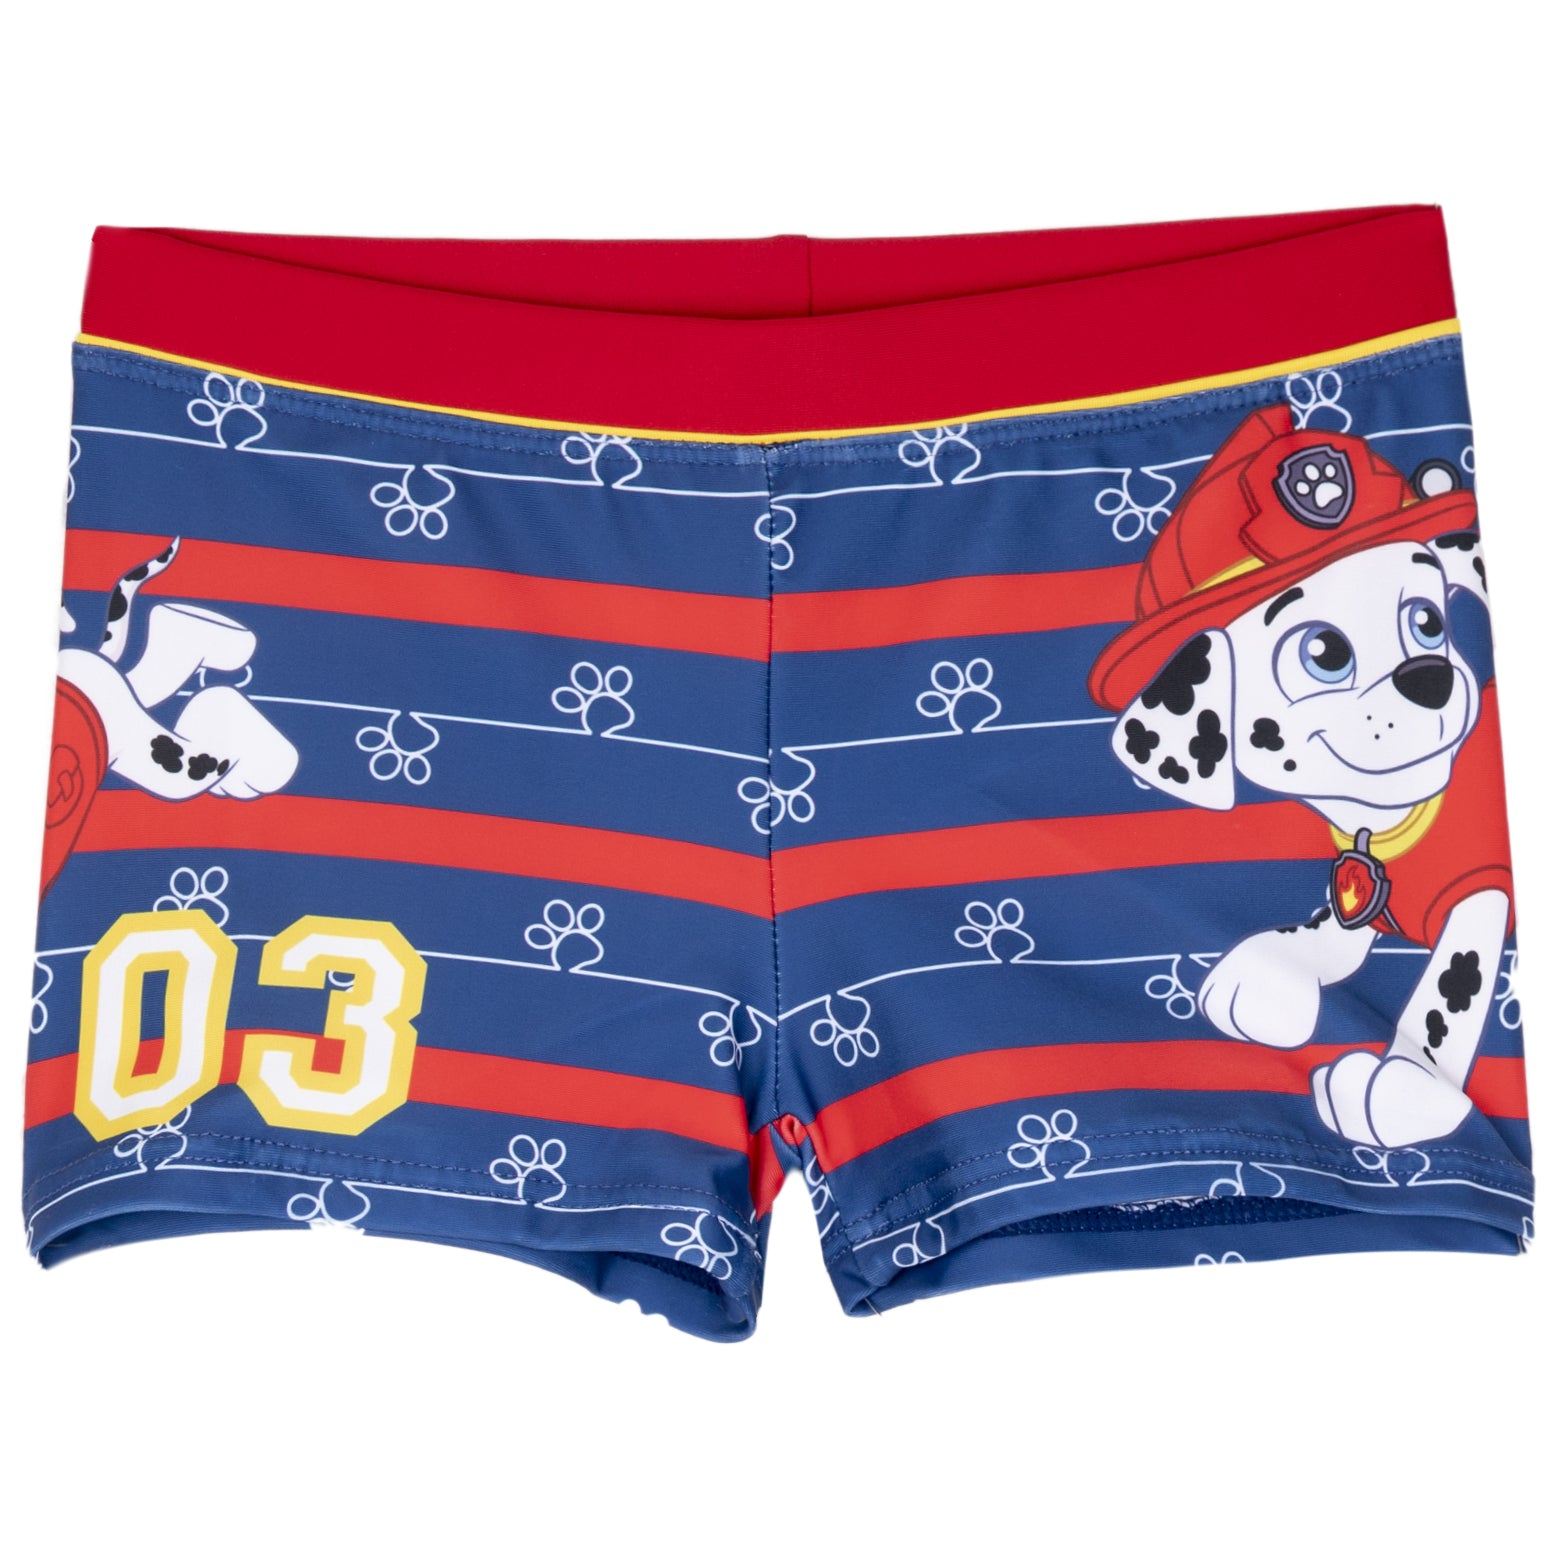 62dc015e10e51 Paw Patrol Boys Swimming Boxers, Swimsuit Trunks 2-6 Years - Navy, Marshall